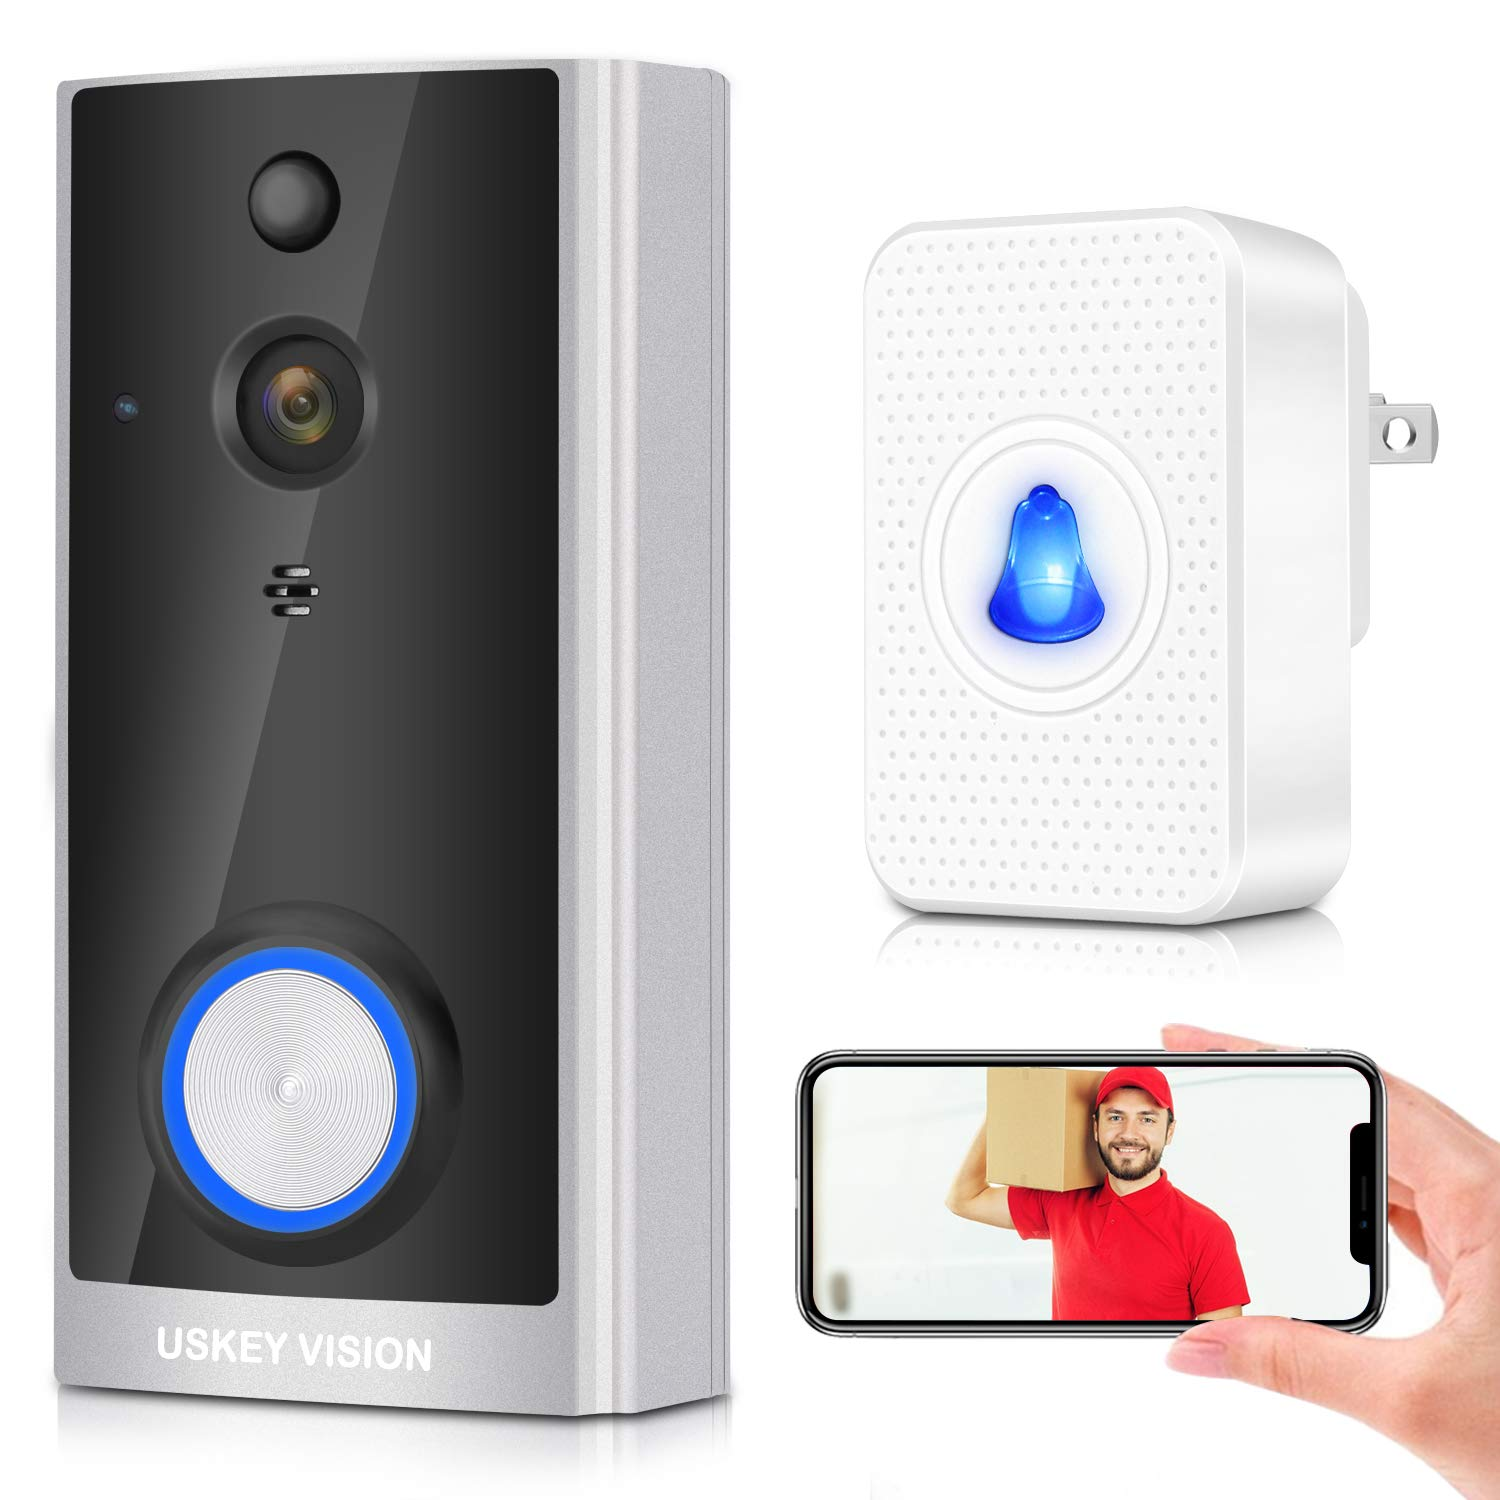 Wireless Video Doorbell with Chime, Wireless Doorbell with Camera and Video,Wirefree Battery Video Doorbell, Freewire Rechargeable Battery Doorbell 2-Way Audio 720P APP Control by USKEYVISION (Silver)